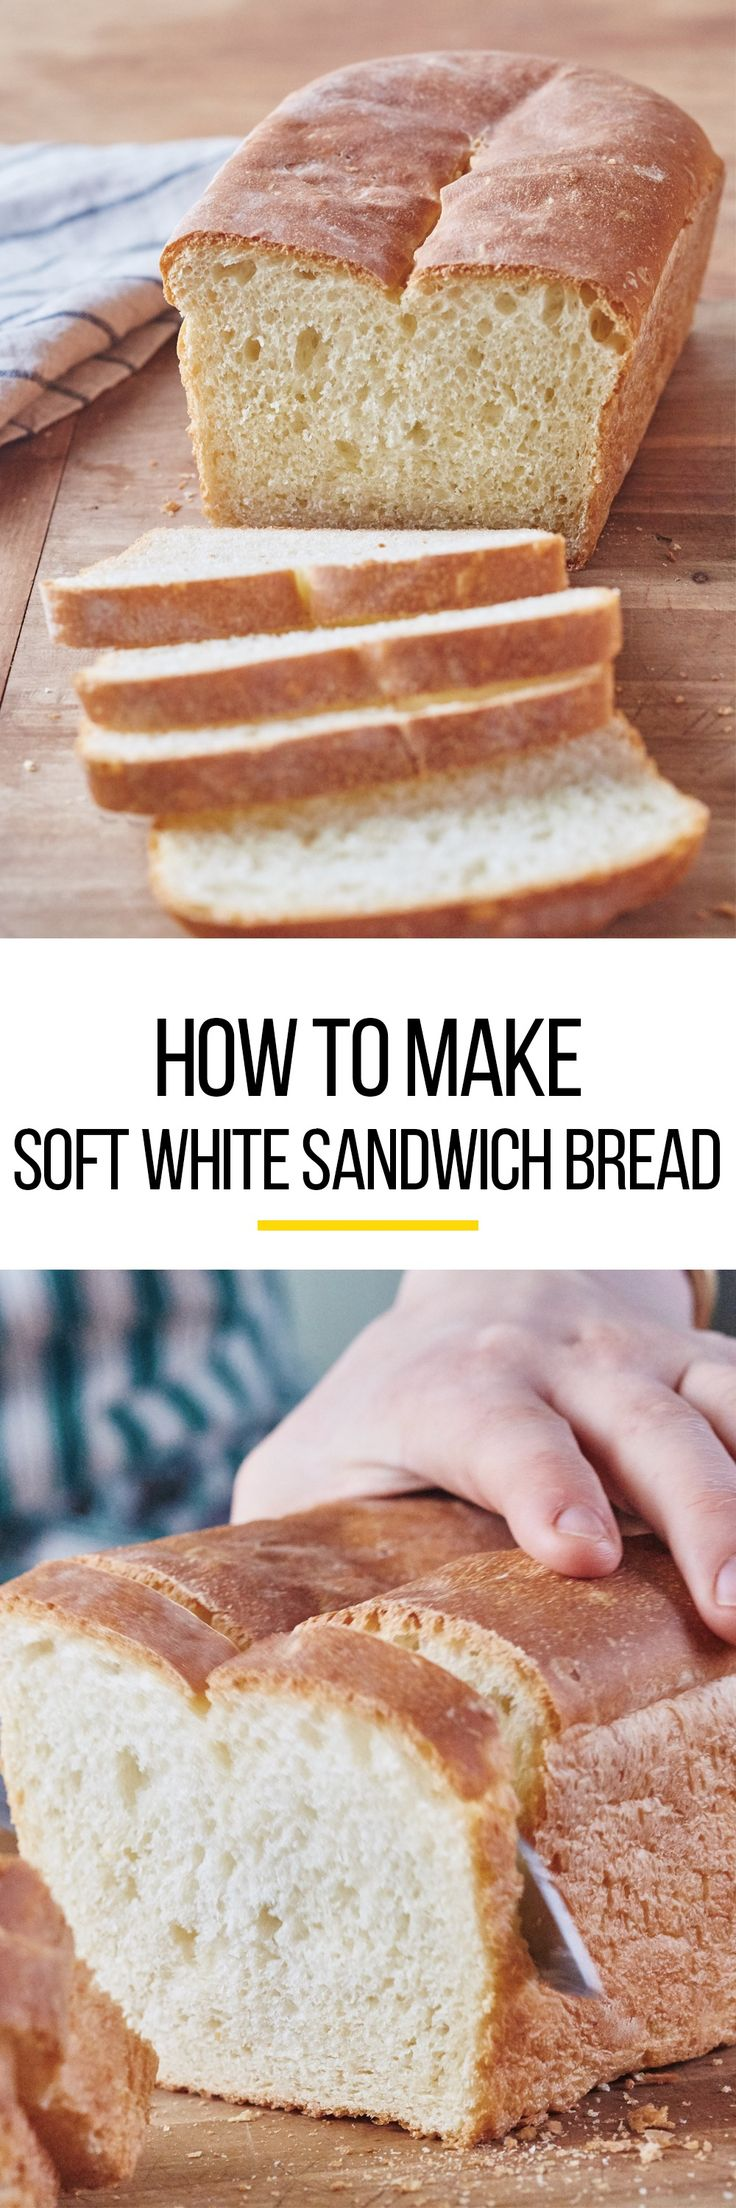 Basic White Sandwich Bread How To